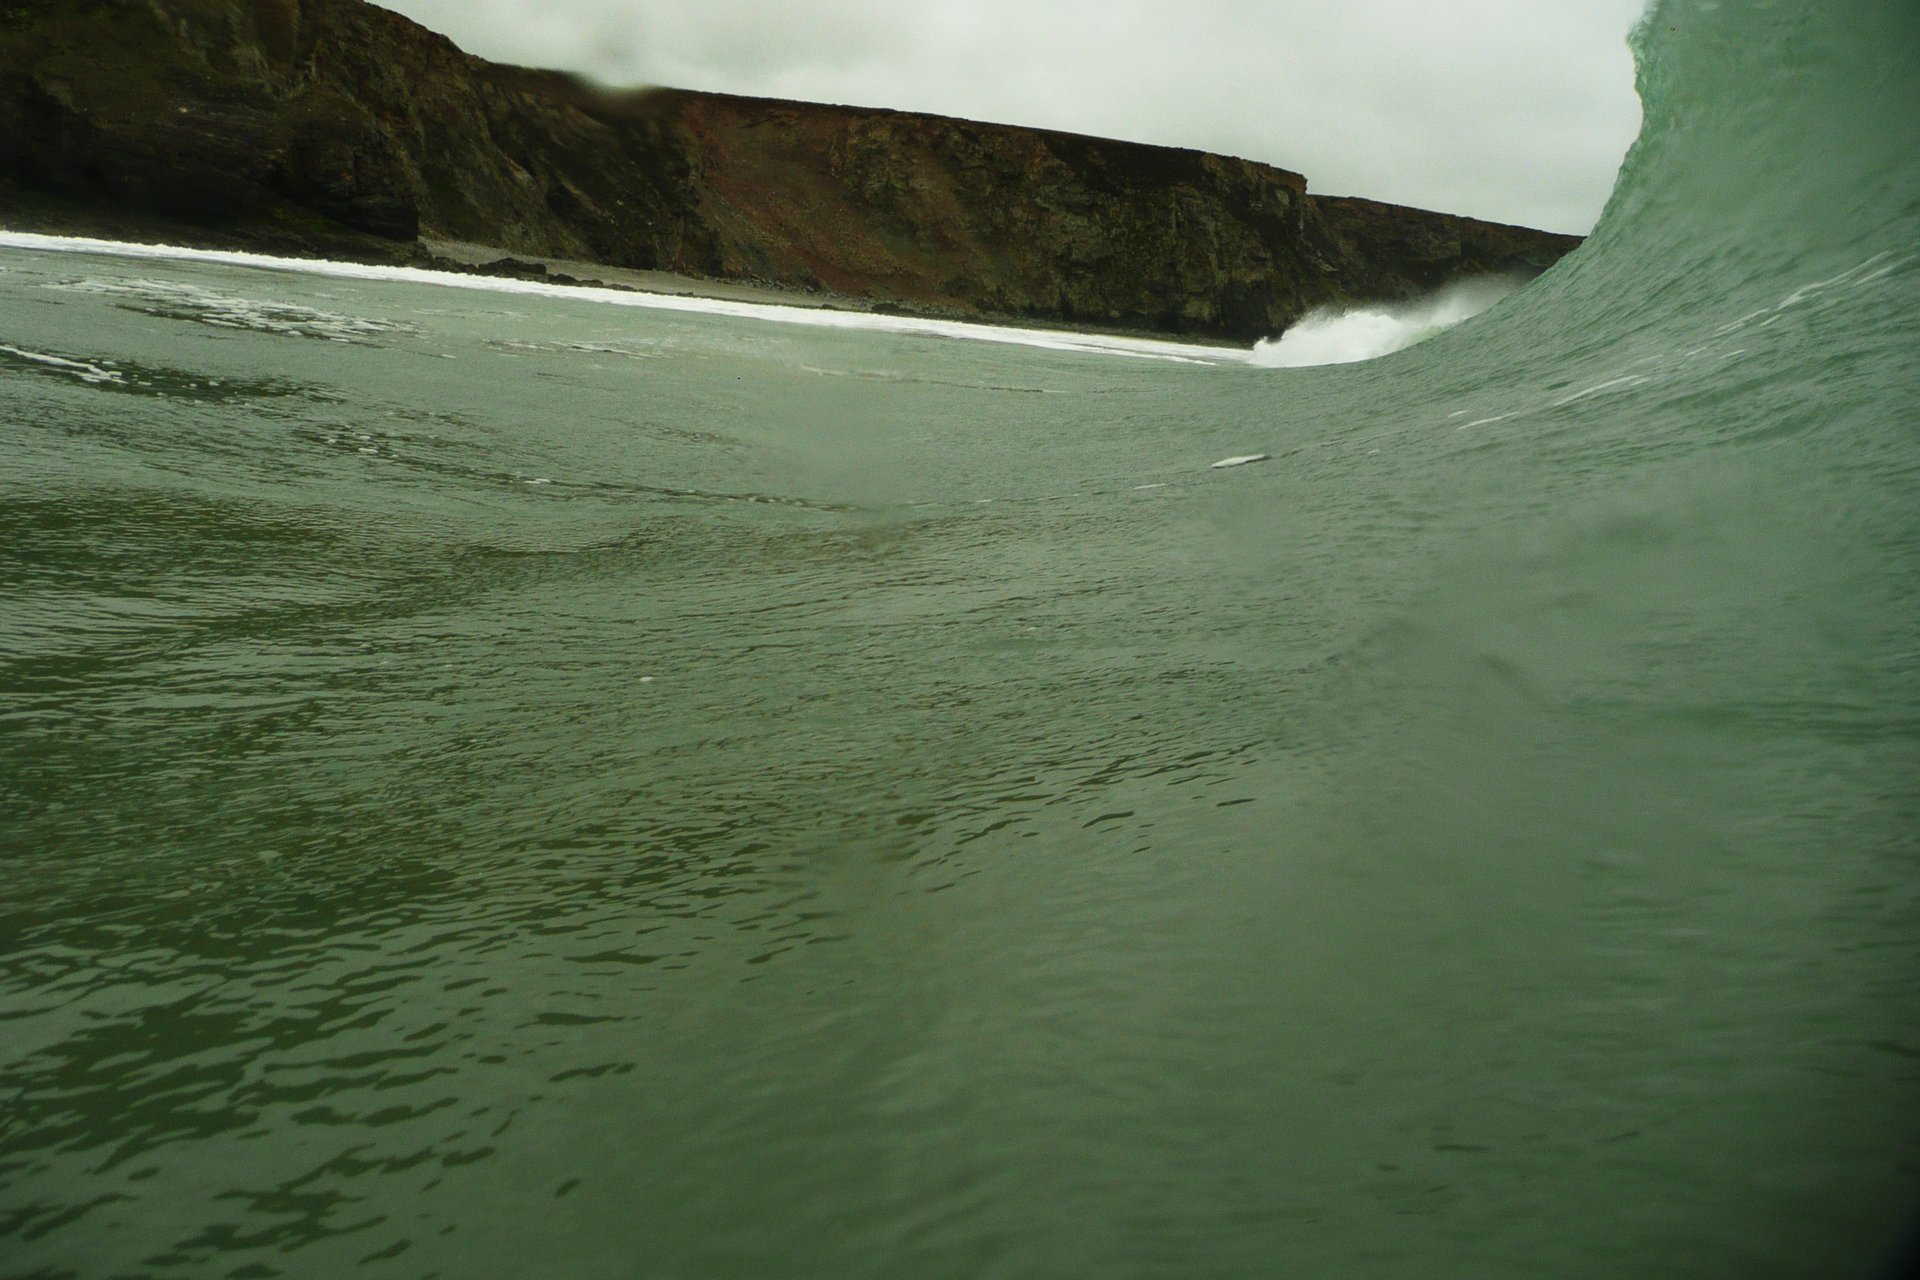 Adam Johns's photo of Porthtowan